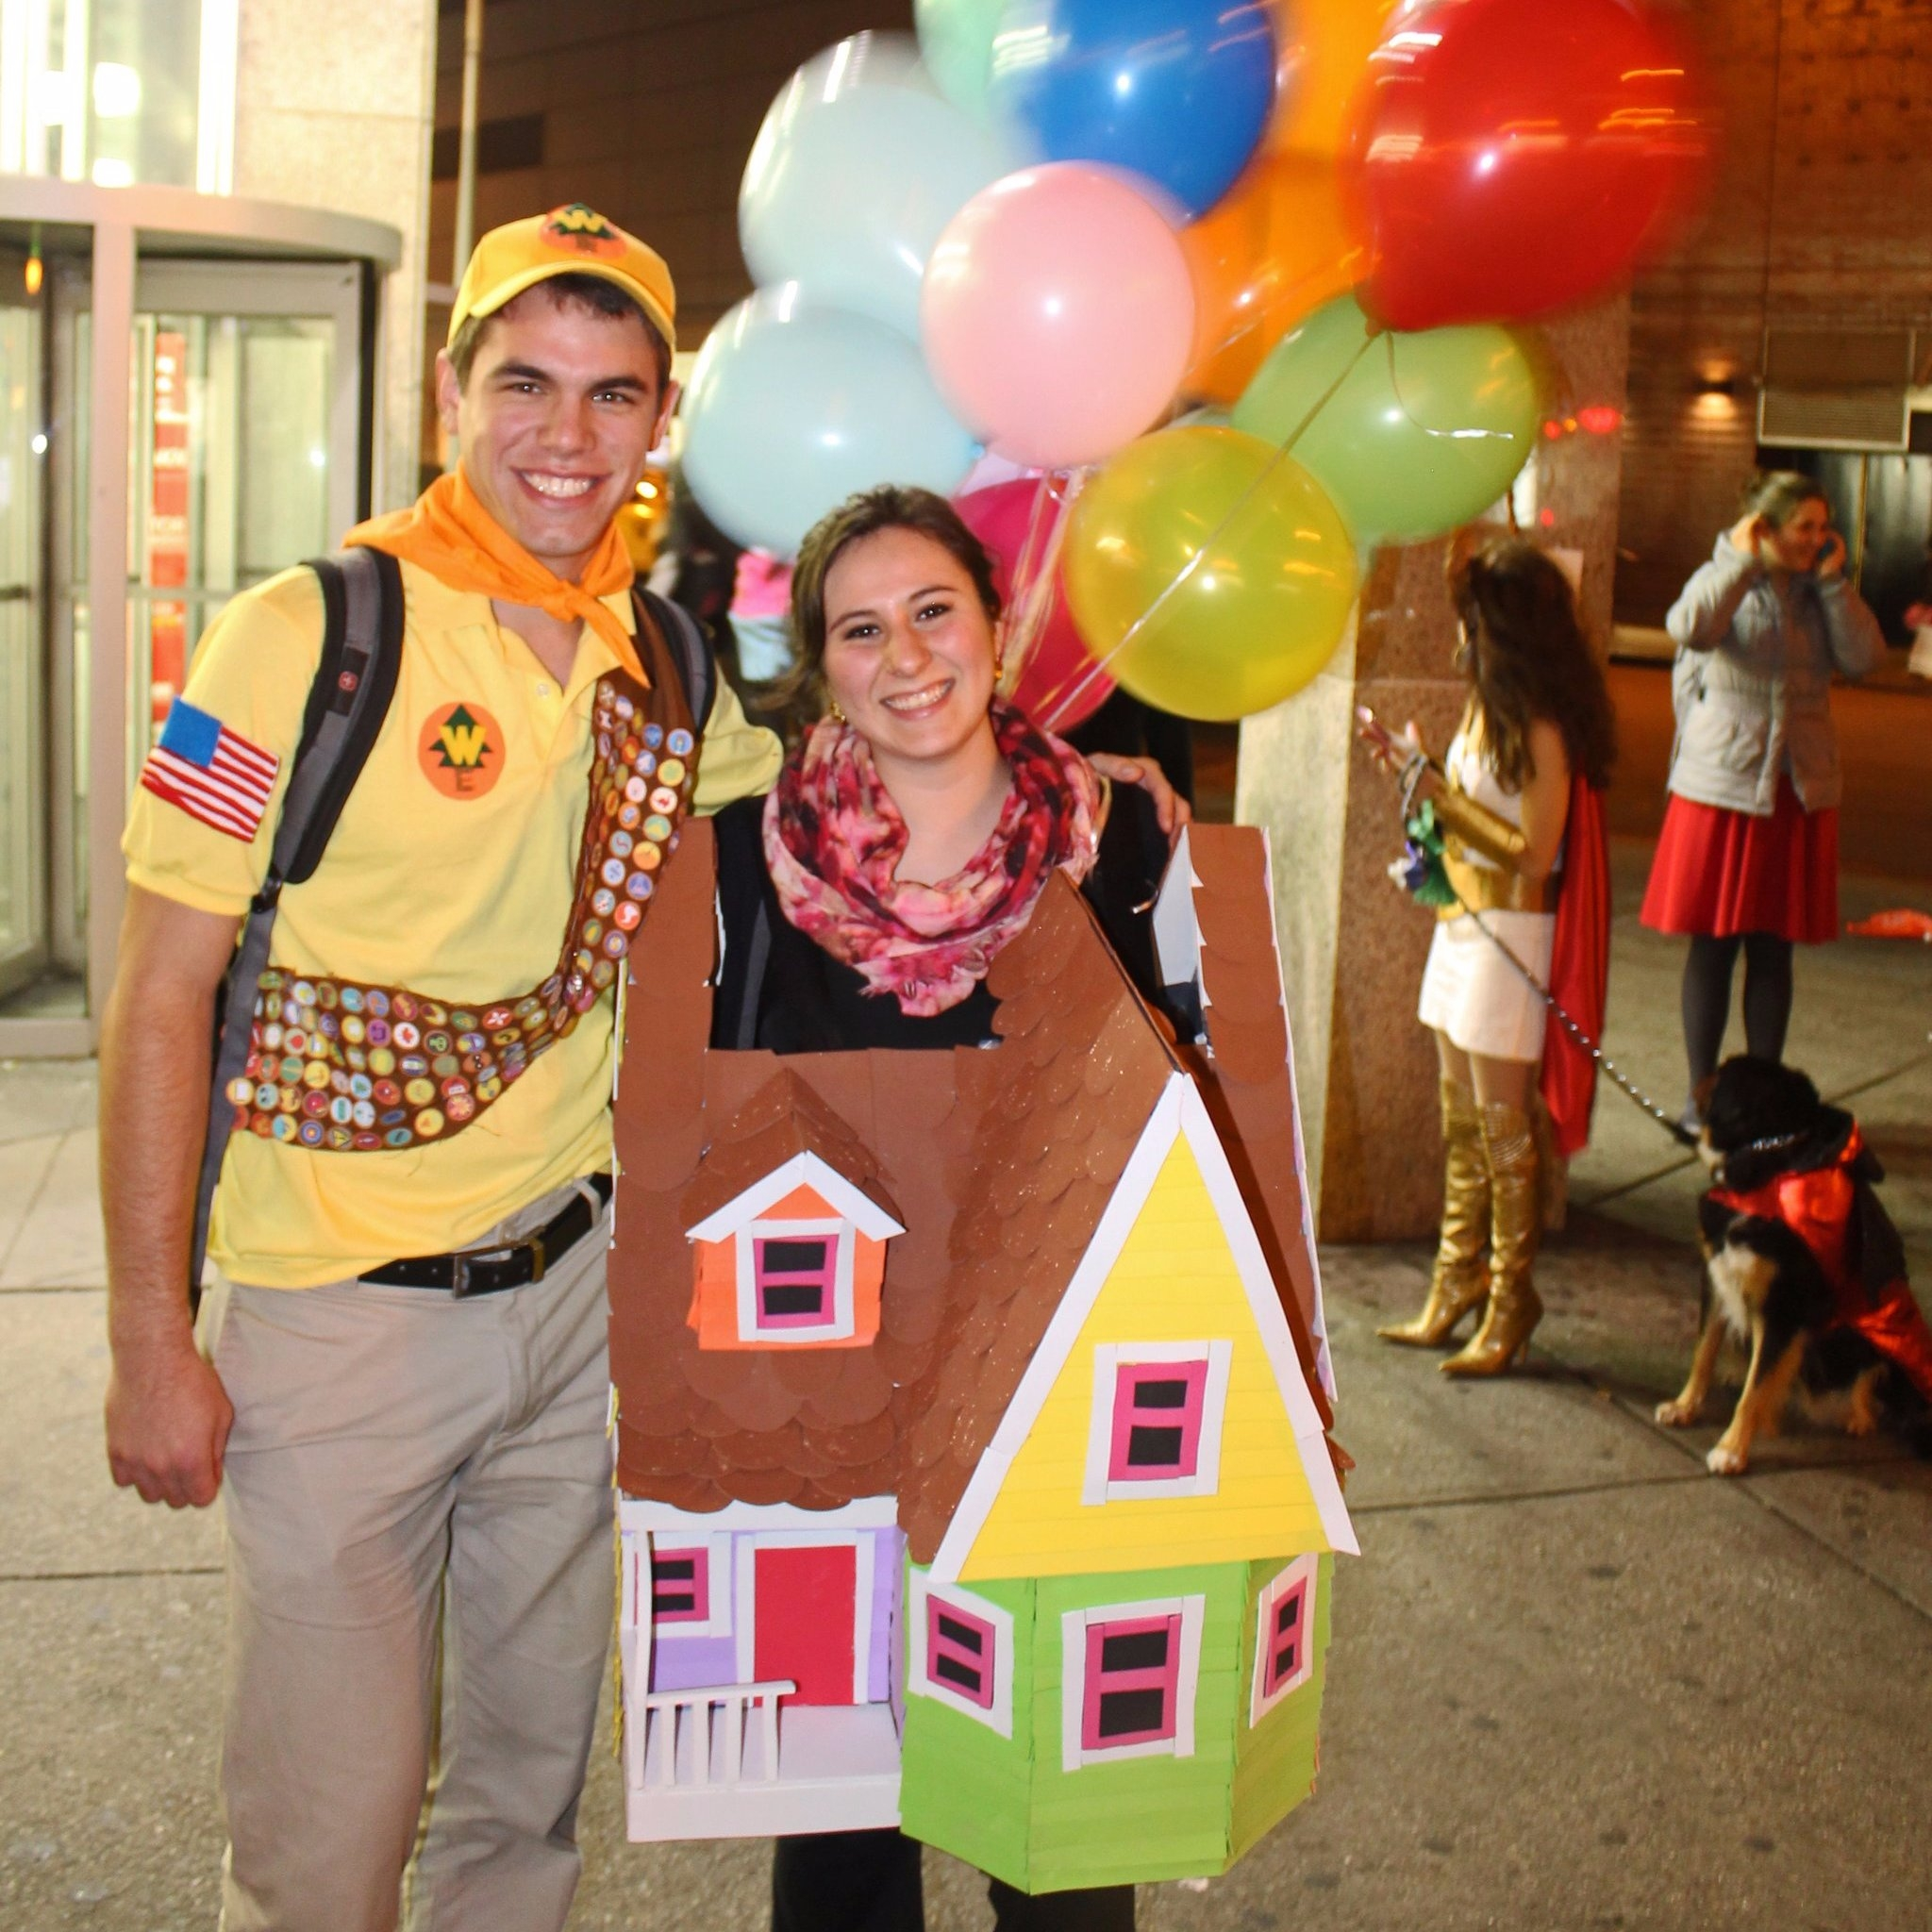 10 Stylish Unique Couples Halloween Costume Ideas cheap diy couples halloween costumes popsugar smart living 2020